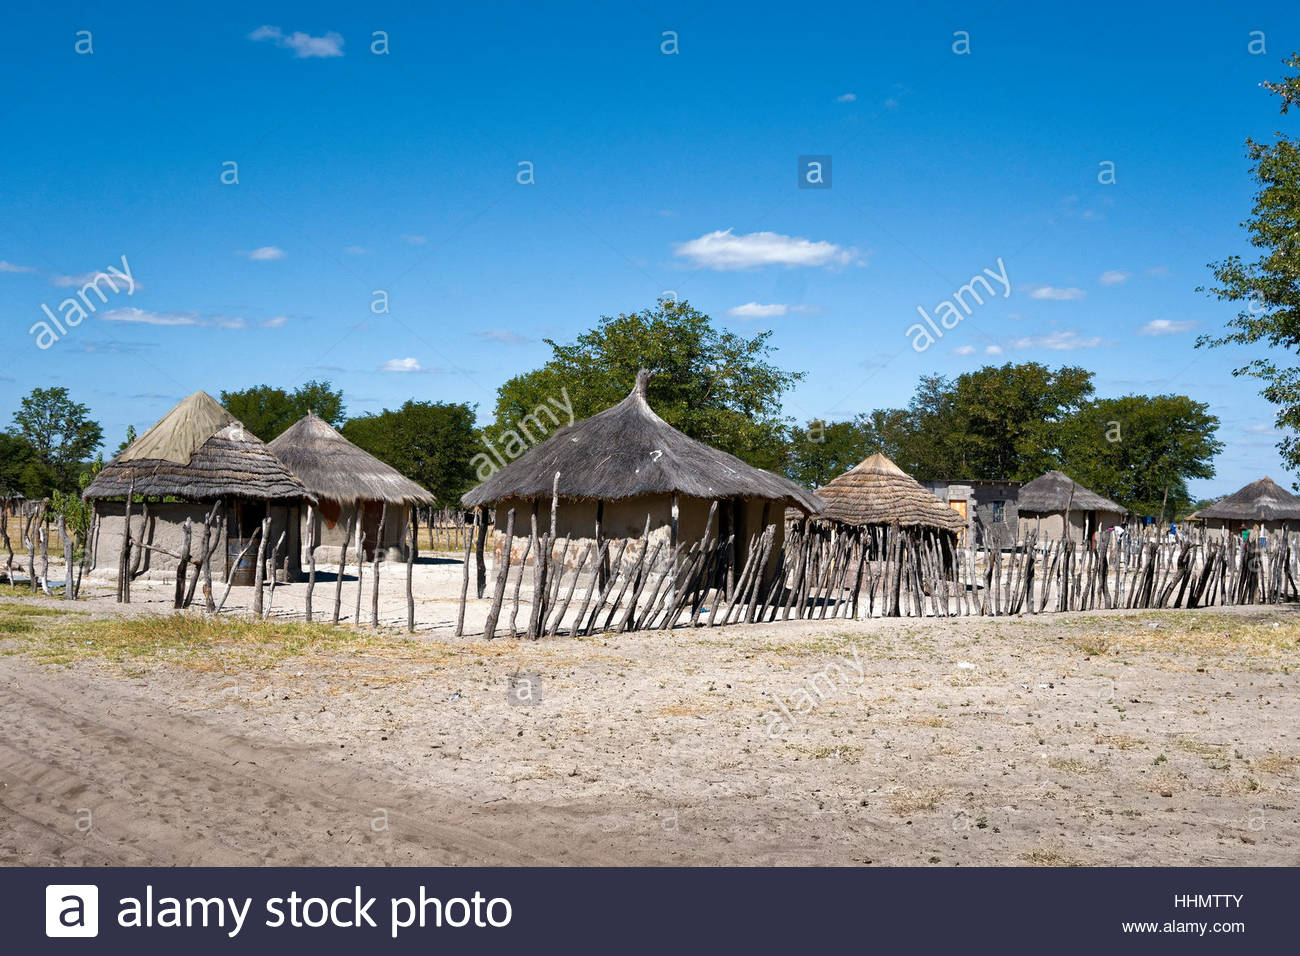 Round huts in a village, Botswana - Stock Image